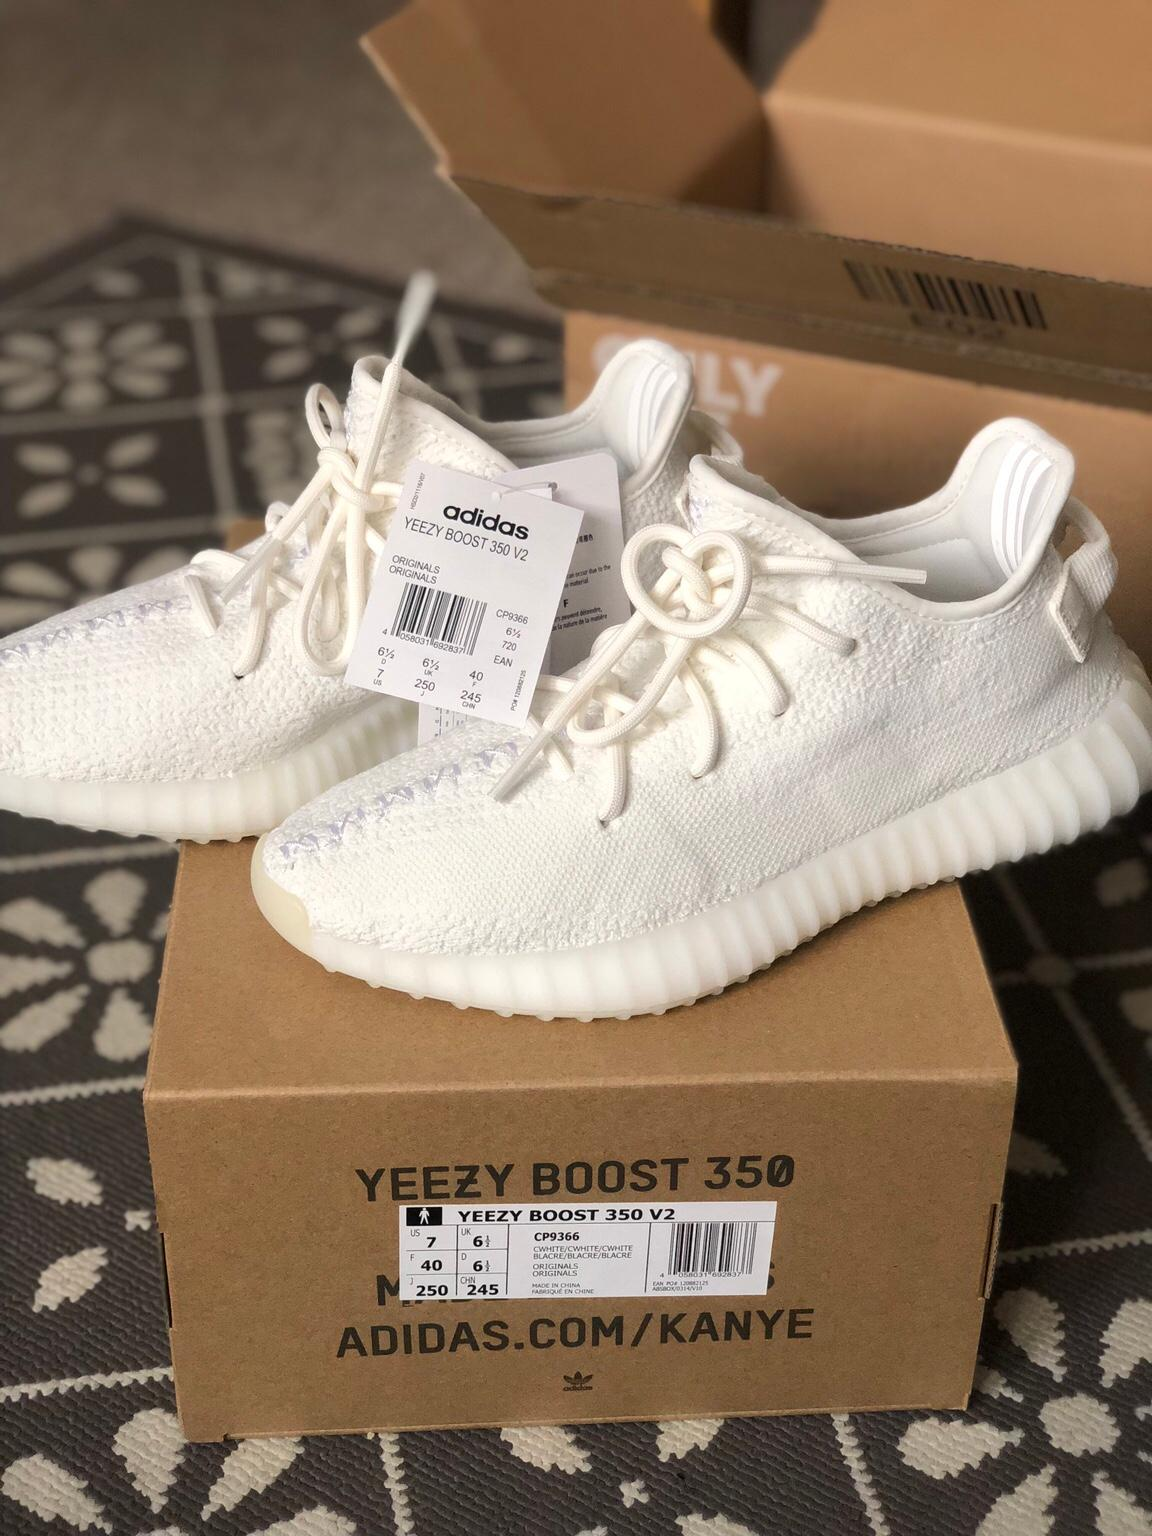 Yeezy Boost 350 V2 Triple White Size 6